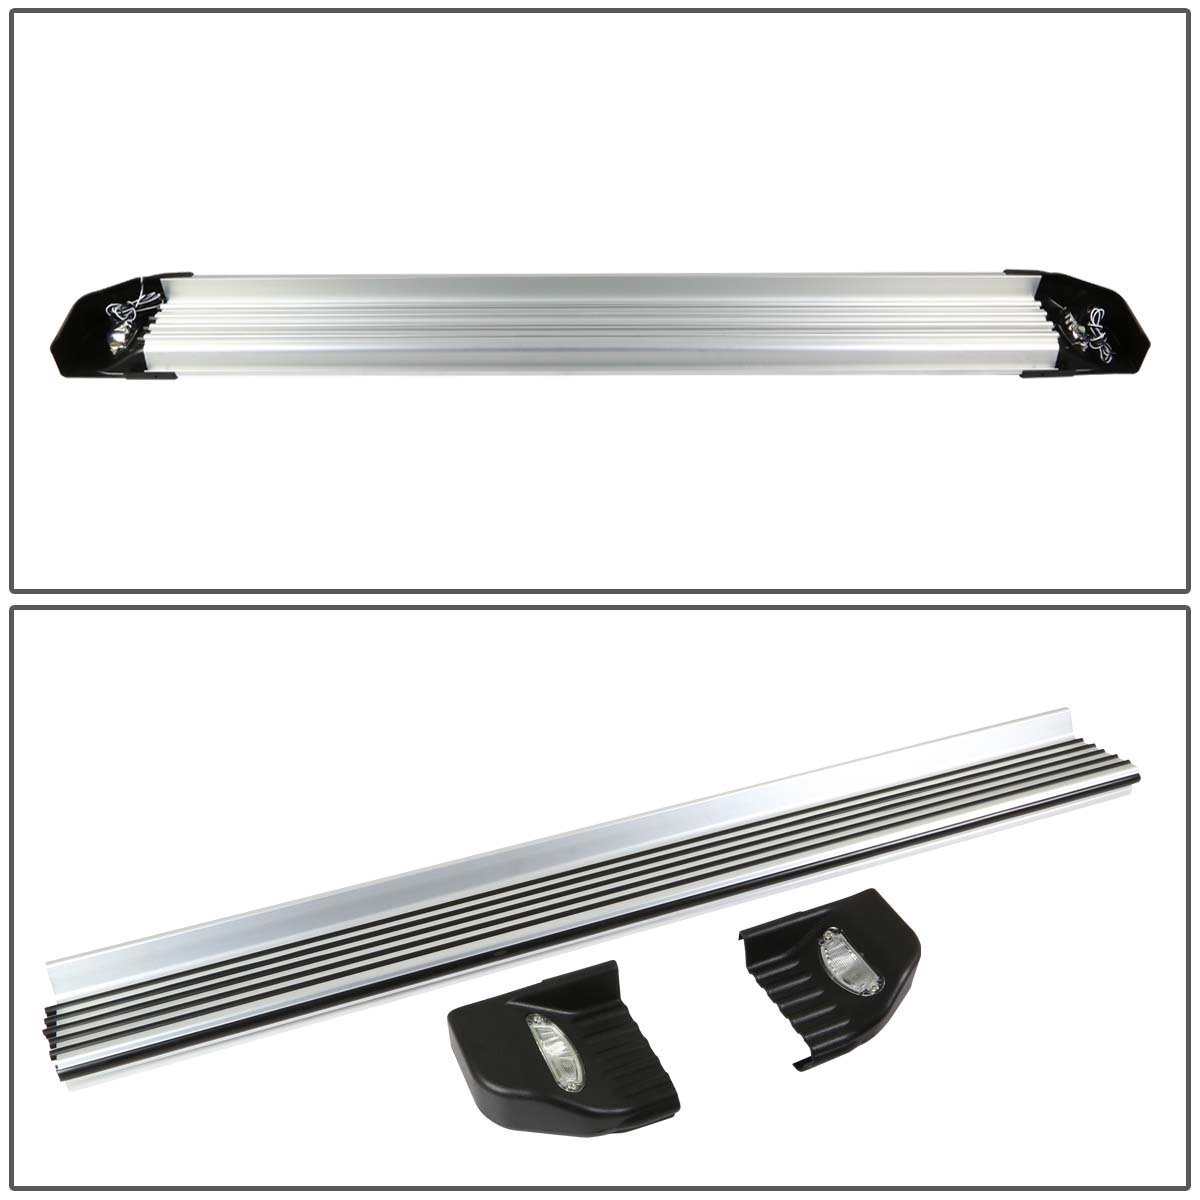 08 13 toyota highlander 525 brushed side nerf step bar lighted 08 13 toyota highlander 525 brushed side nerf step bar lighted running boards aloadofball Images